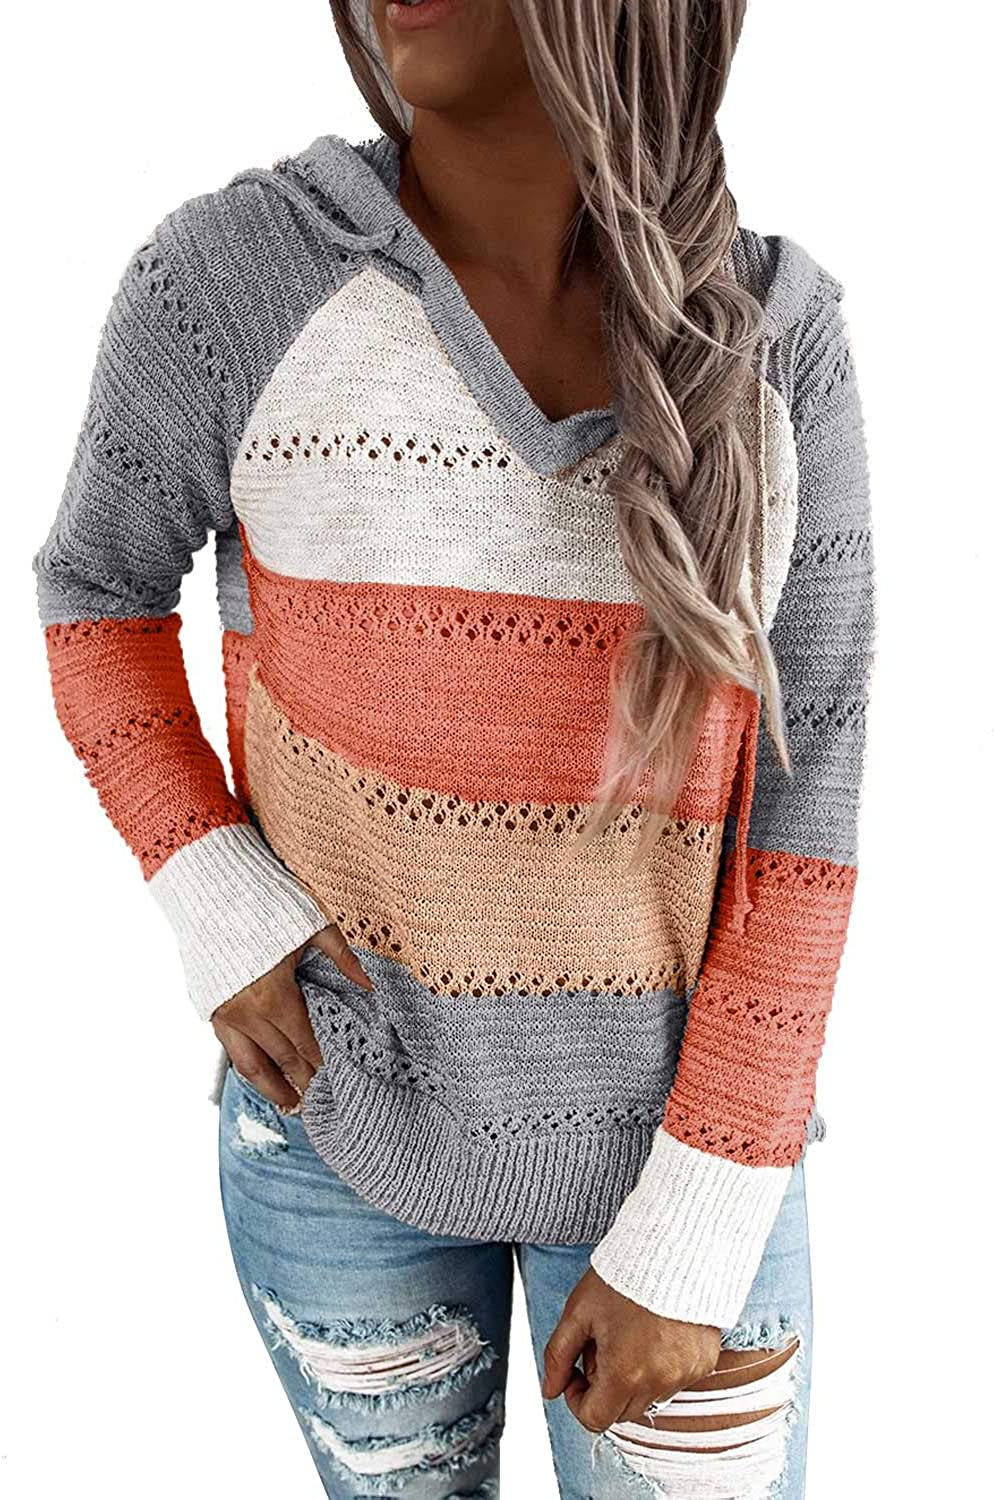 FEKOAFE Womens Striped Color Block Hoodies Fashion V Neck Knit Sweater Pullovers